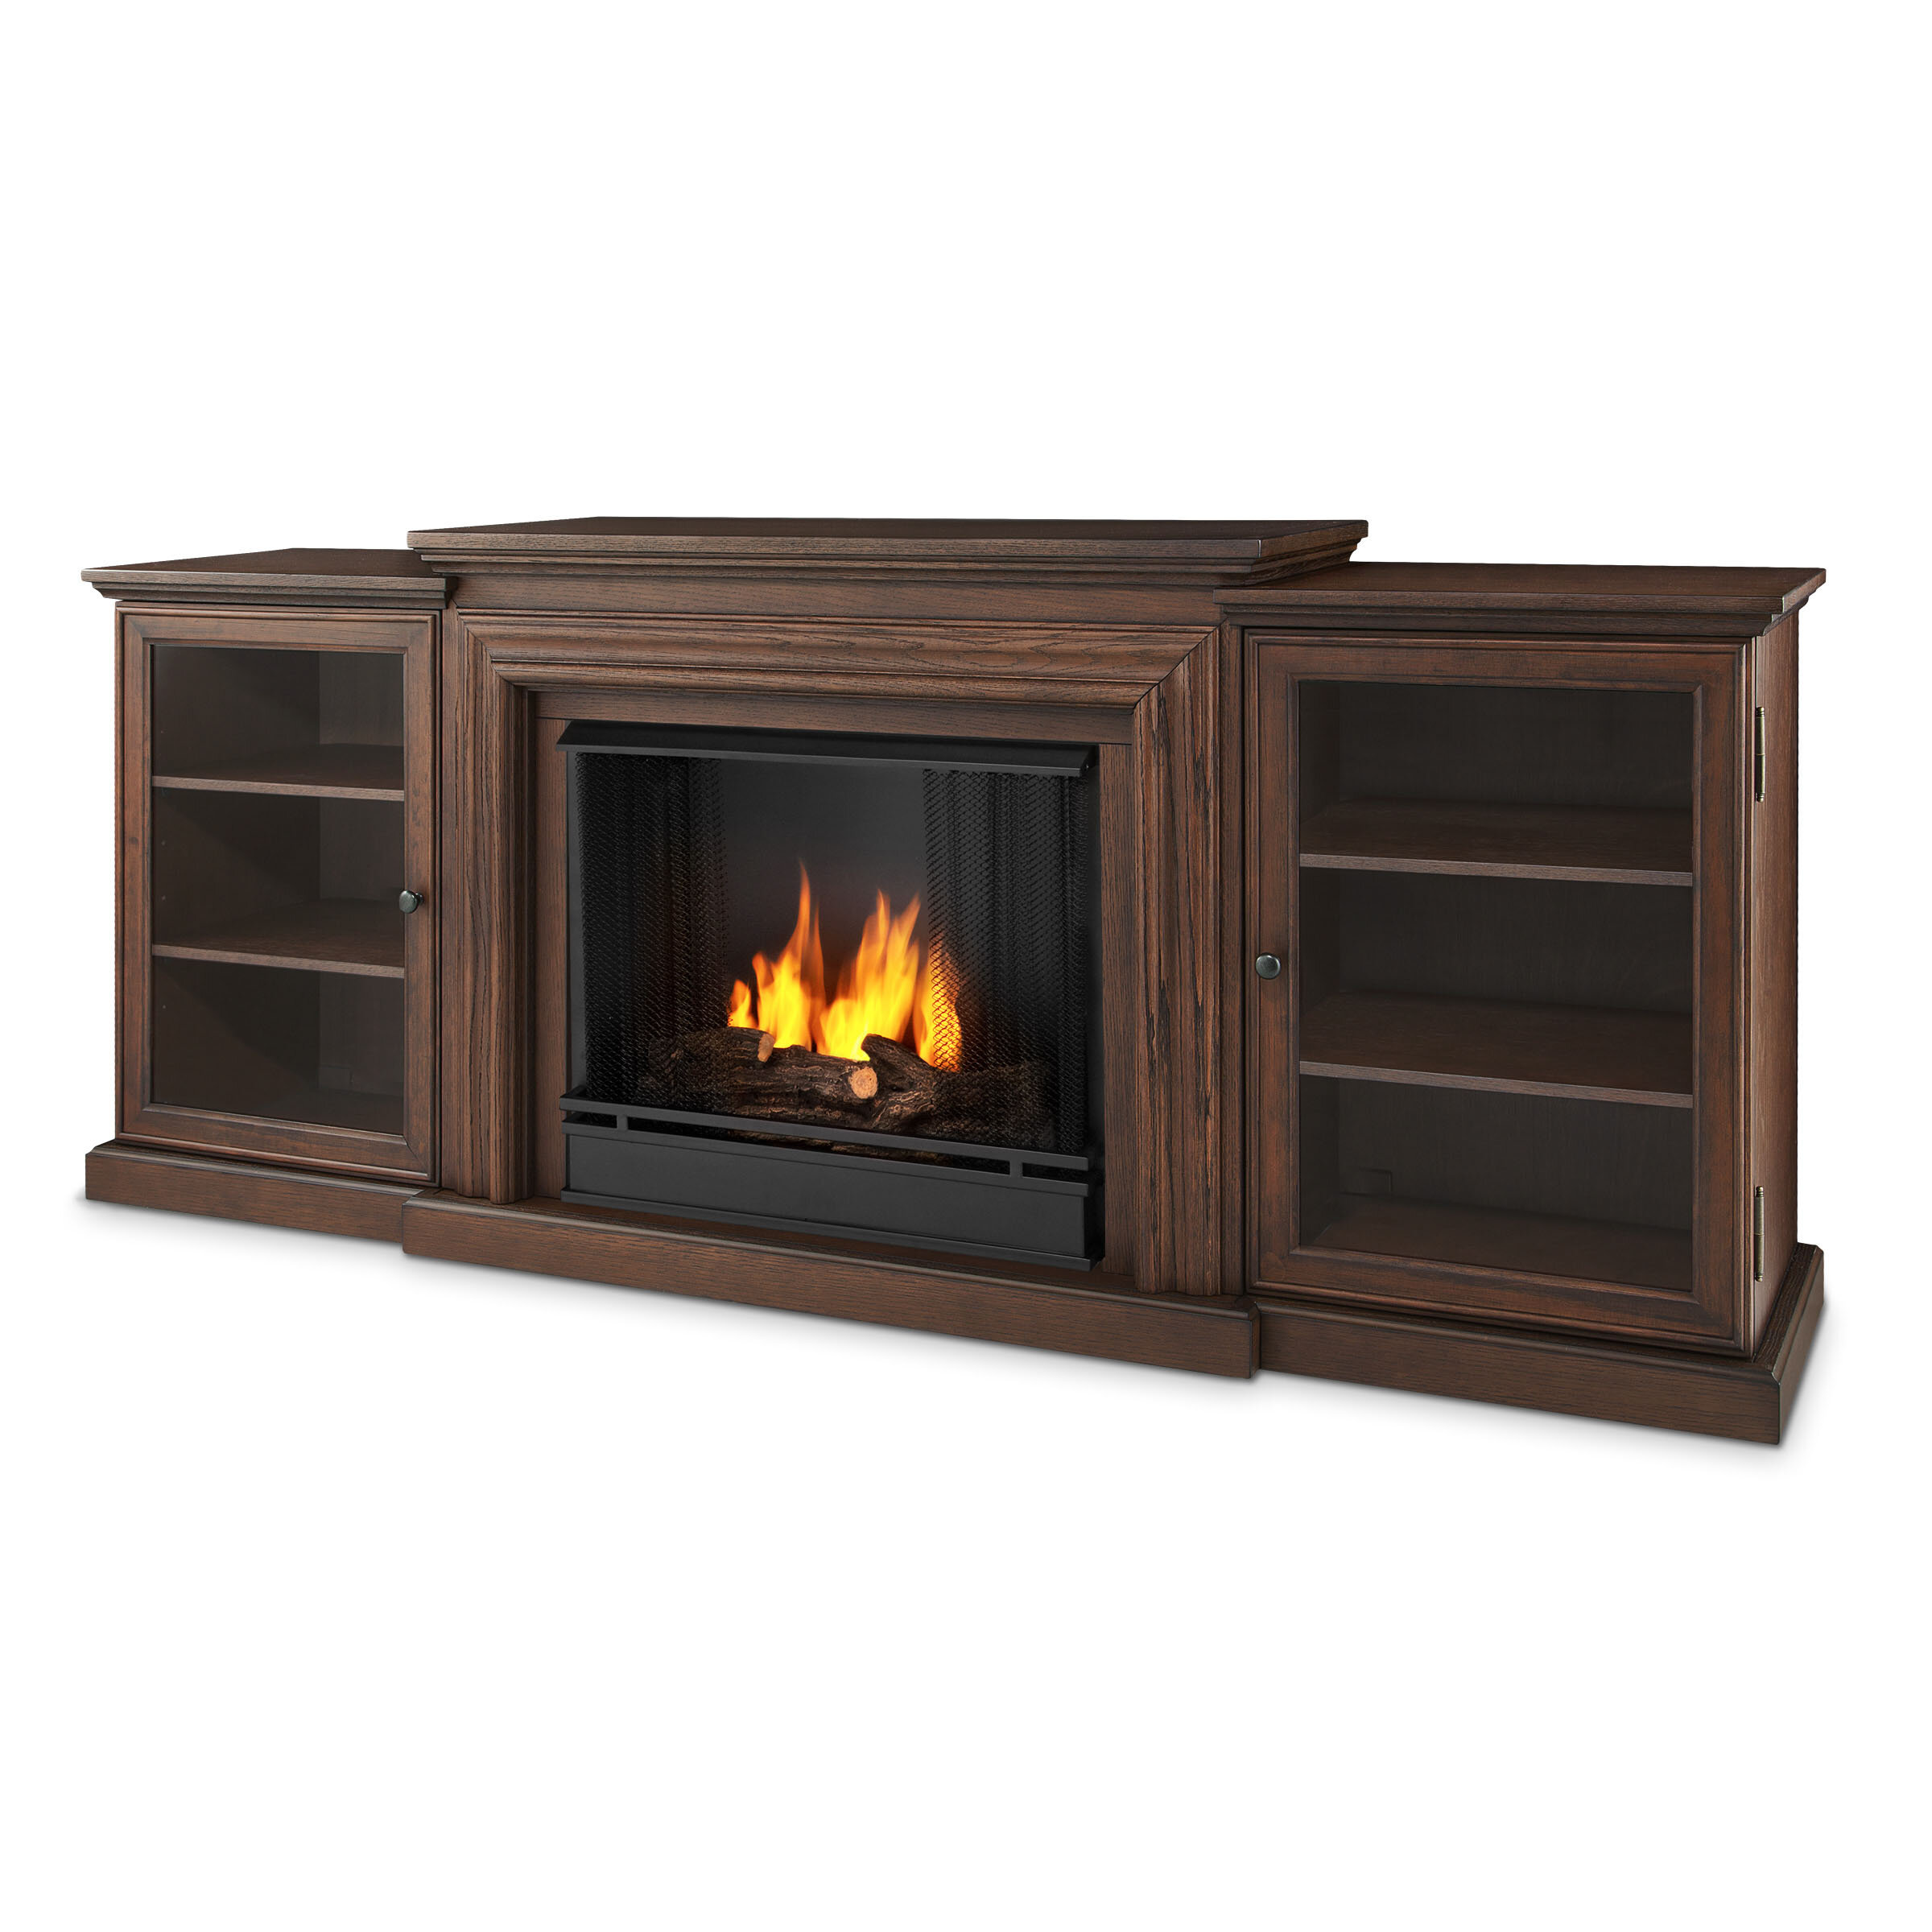 insert escape gel accessories en fuel inserts drolet options and products wood fireplace